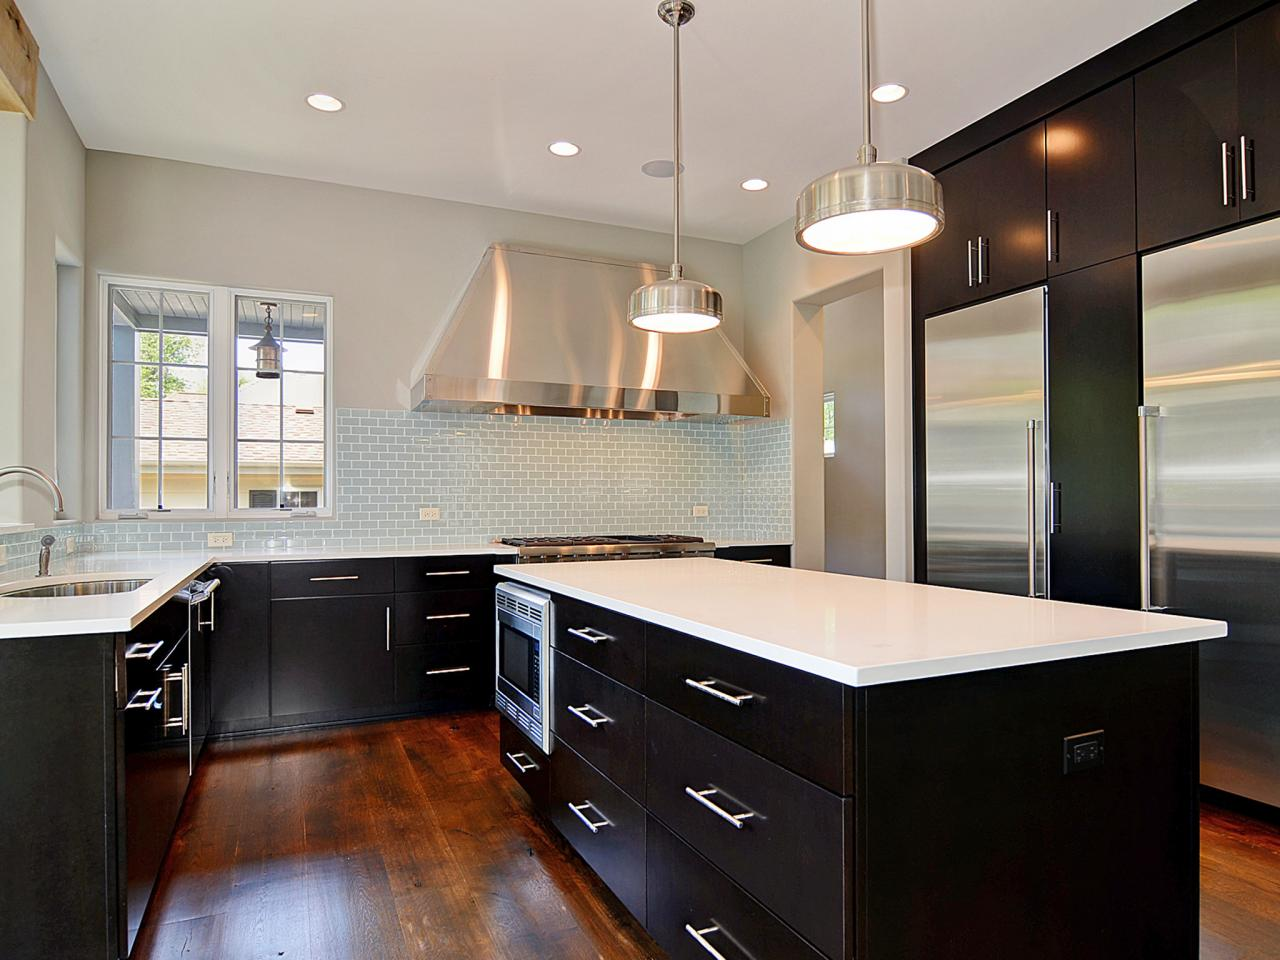 Kitchen theme ideas hgtv pictures tips inspiration hgtv for Black and white galley kitchen